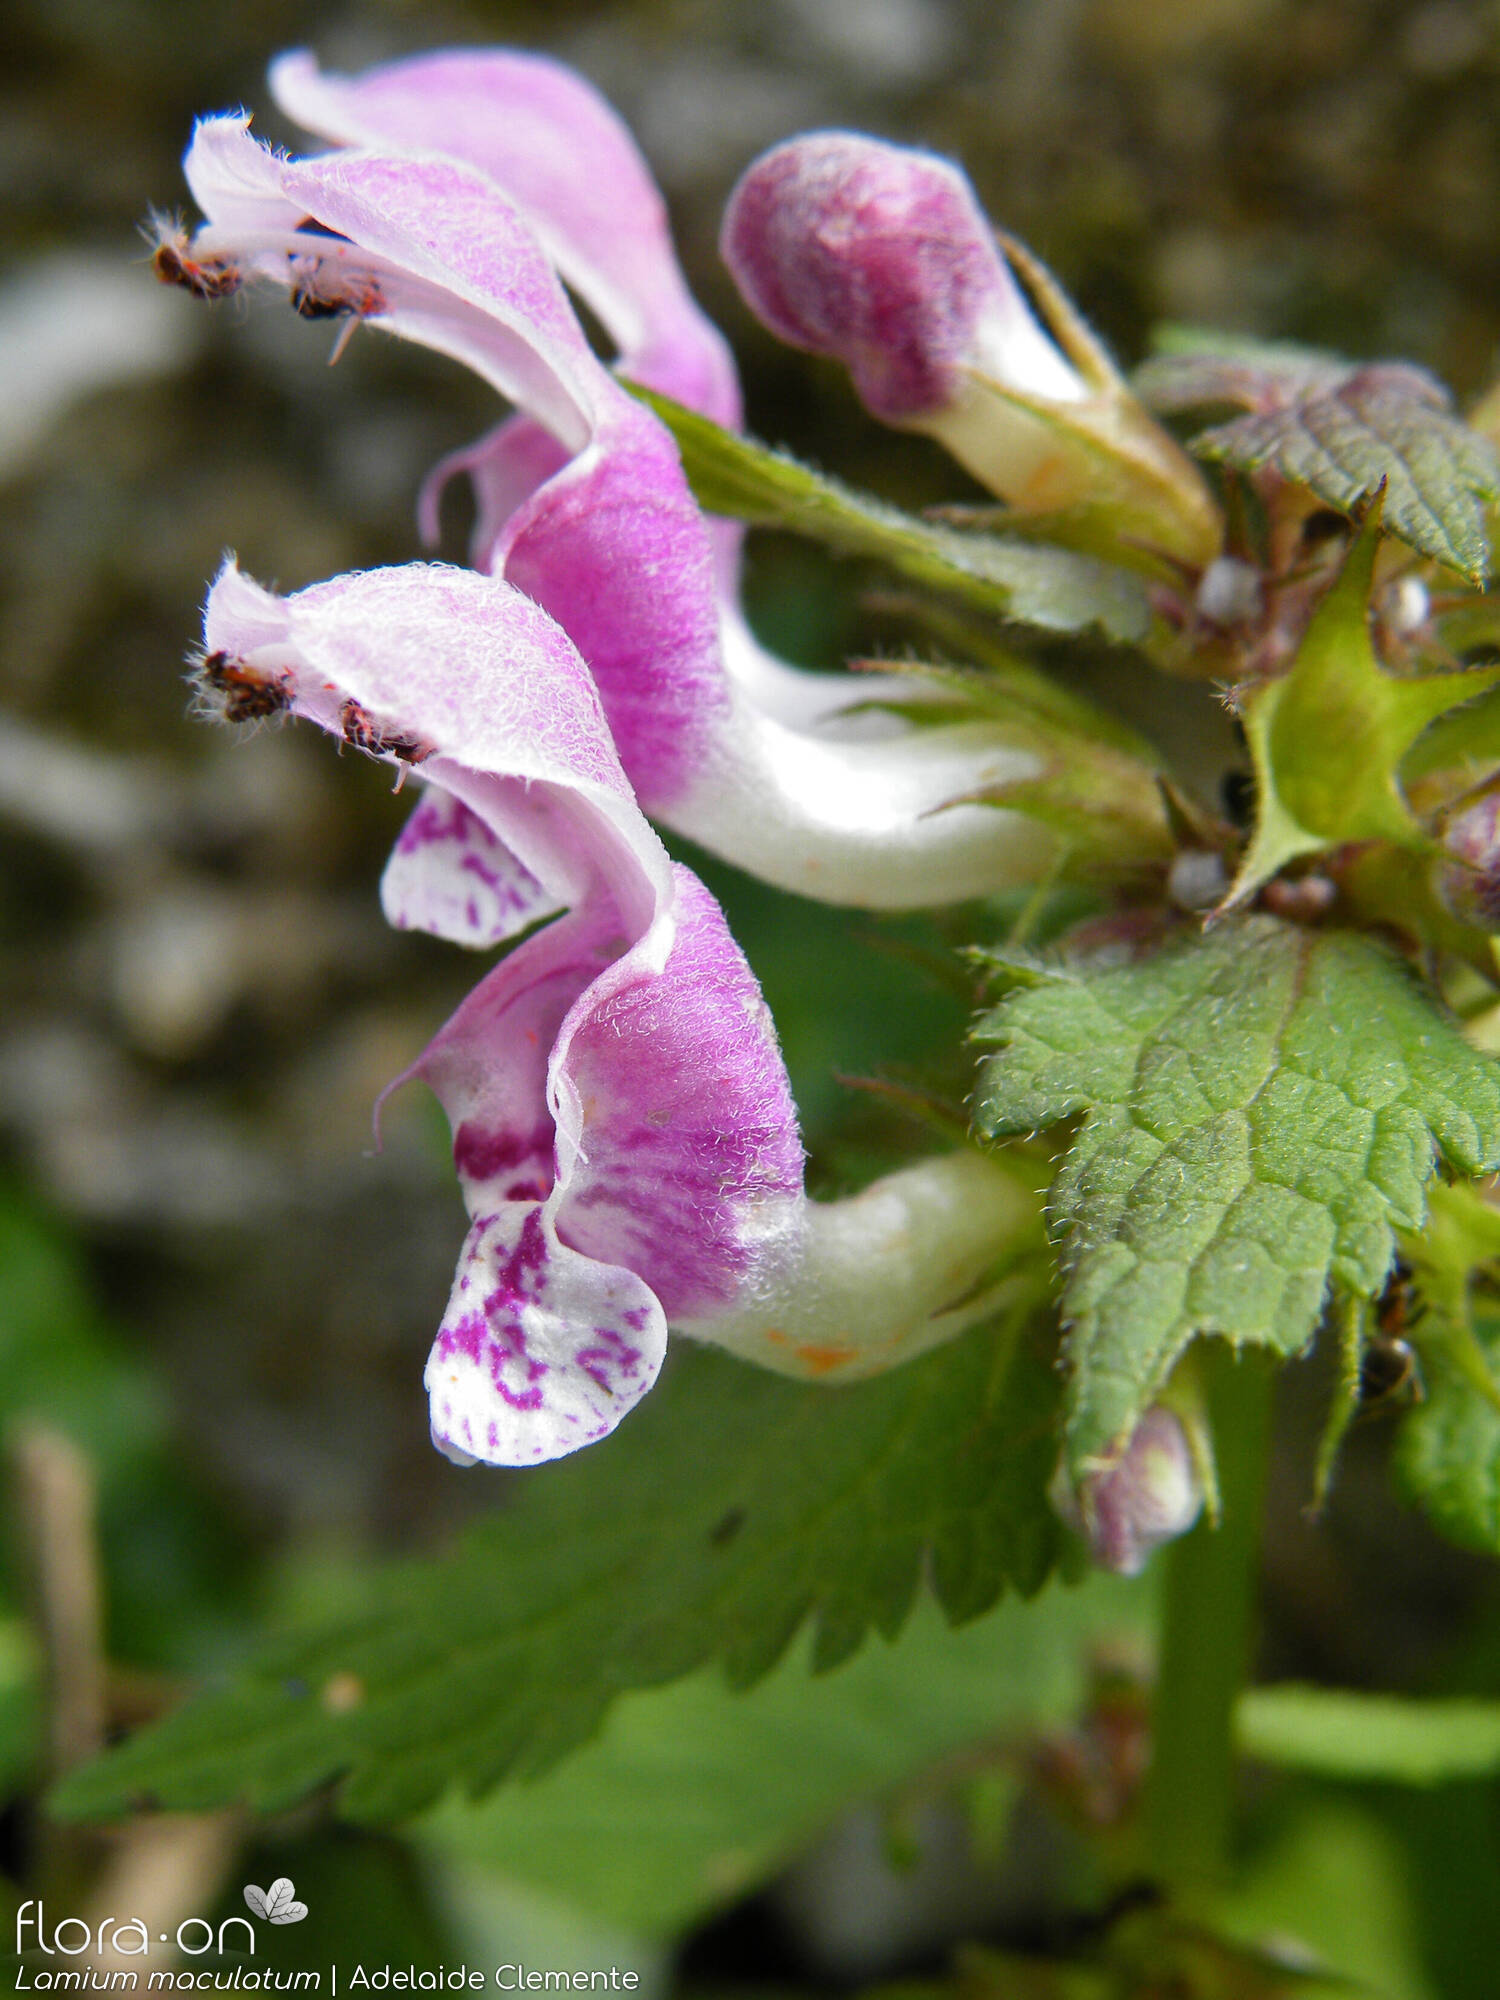 Lamium maculatum - Flor (close-up) | Adelaide Clemente; CC BY-NC 4.0